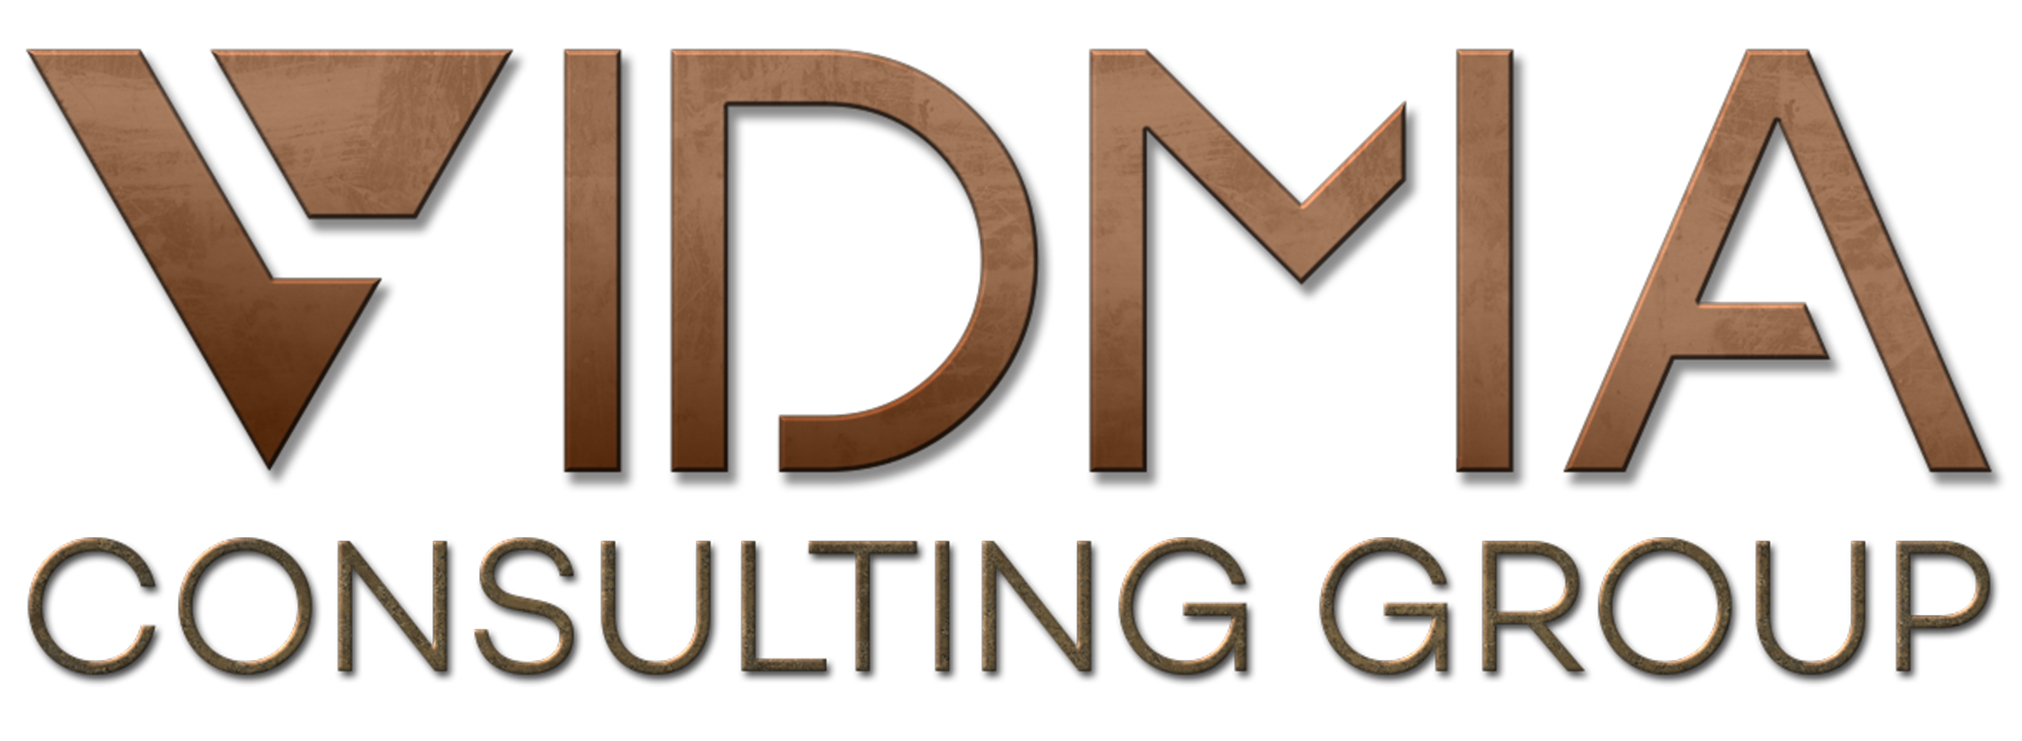 Vidma Consulting Group